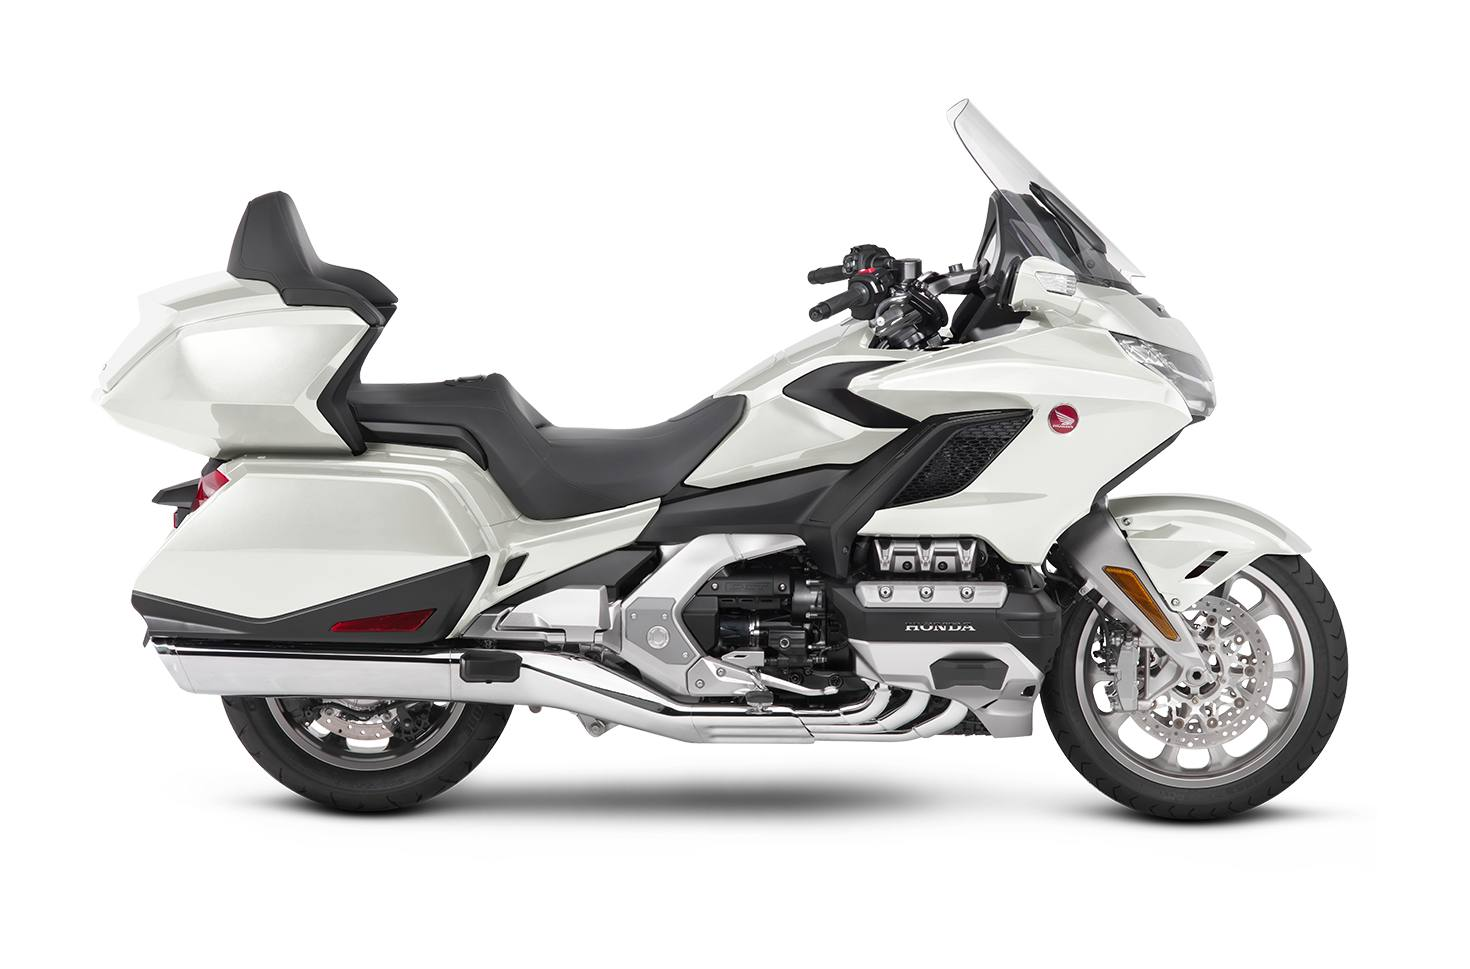 2018 honda gold wing tour dct - demo model